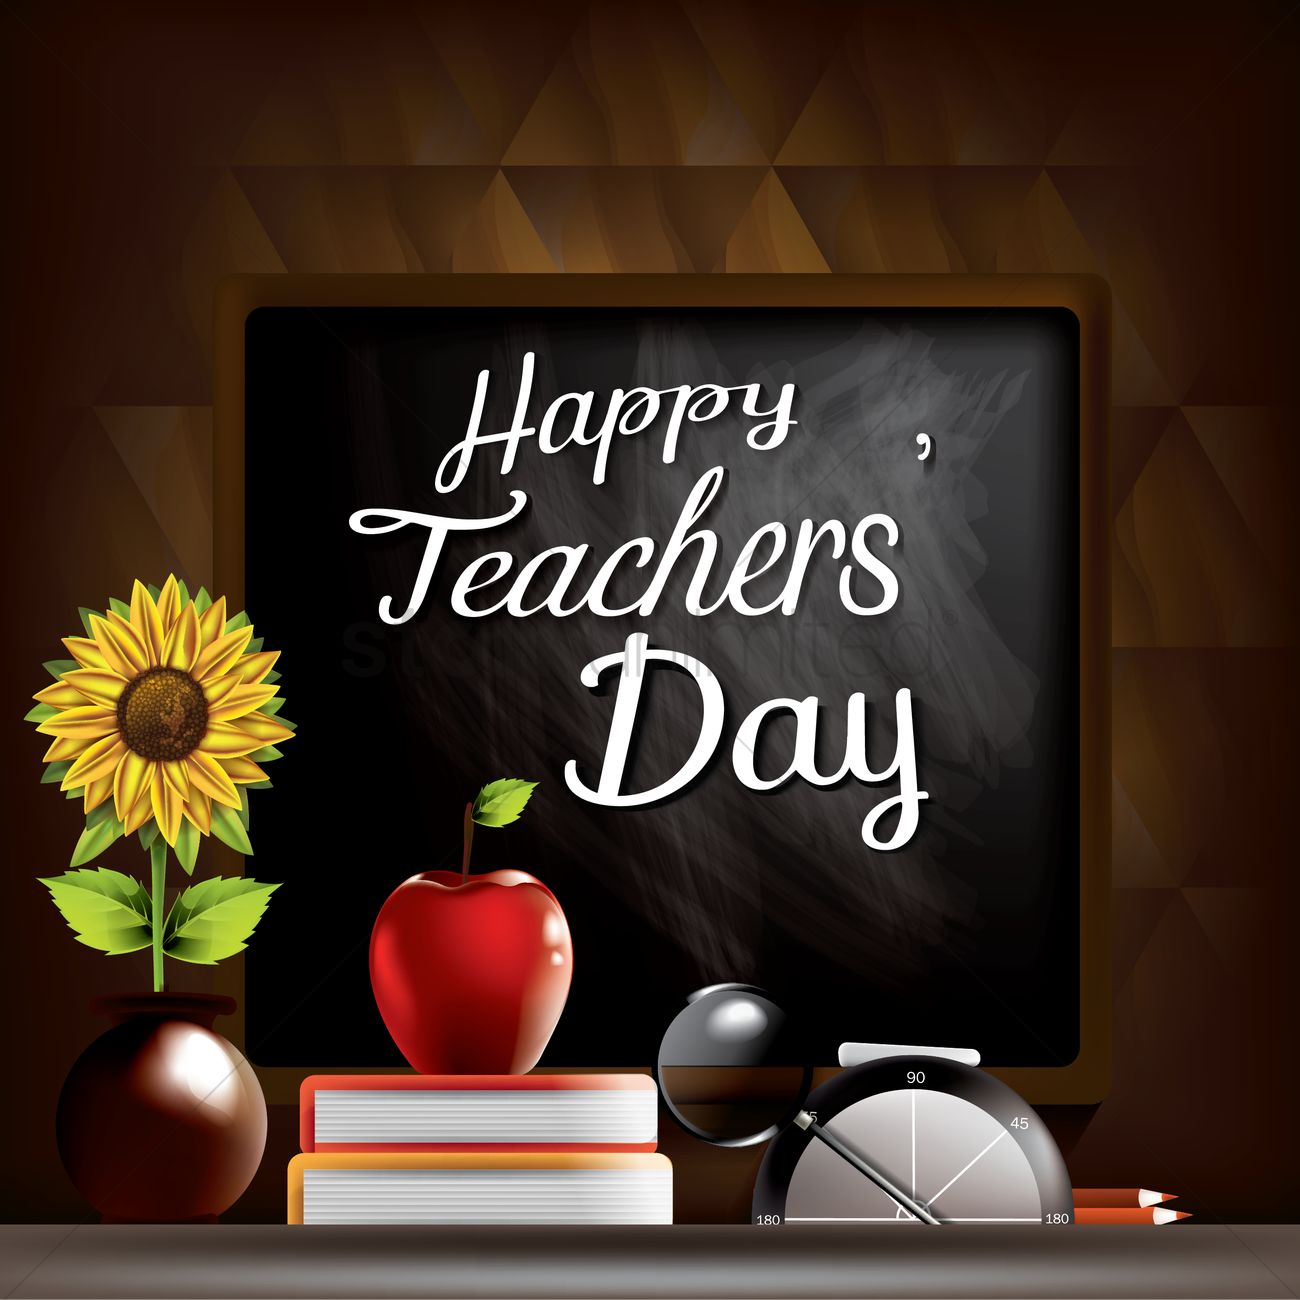 Teachers Day Concept Vector Image